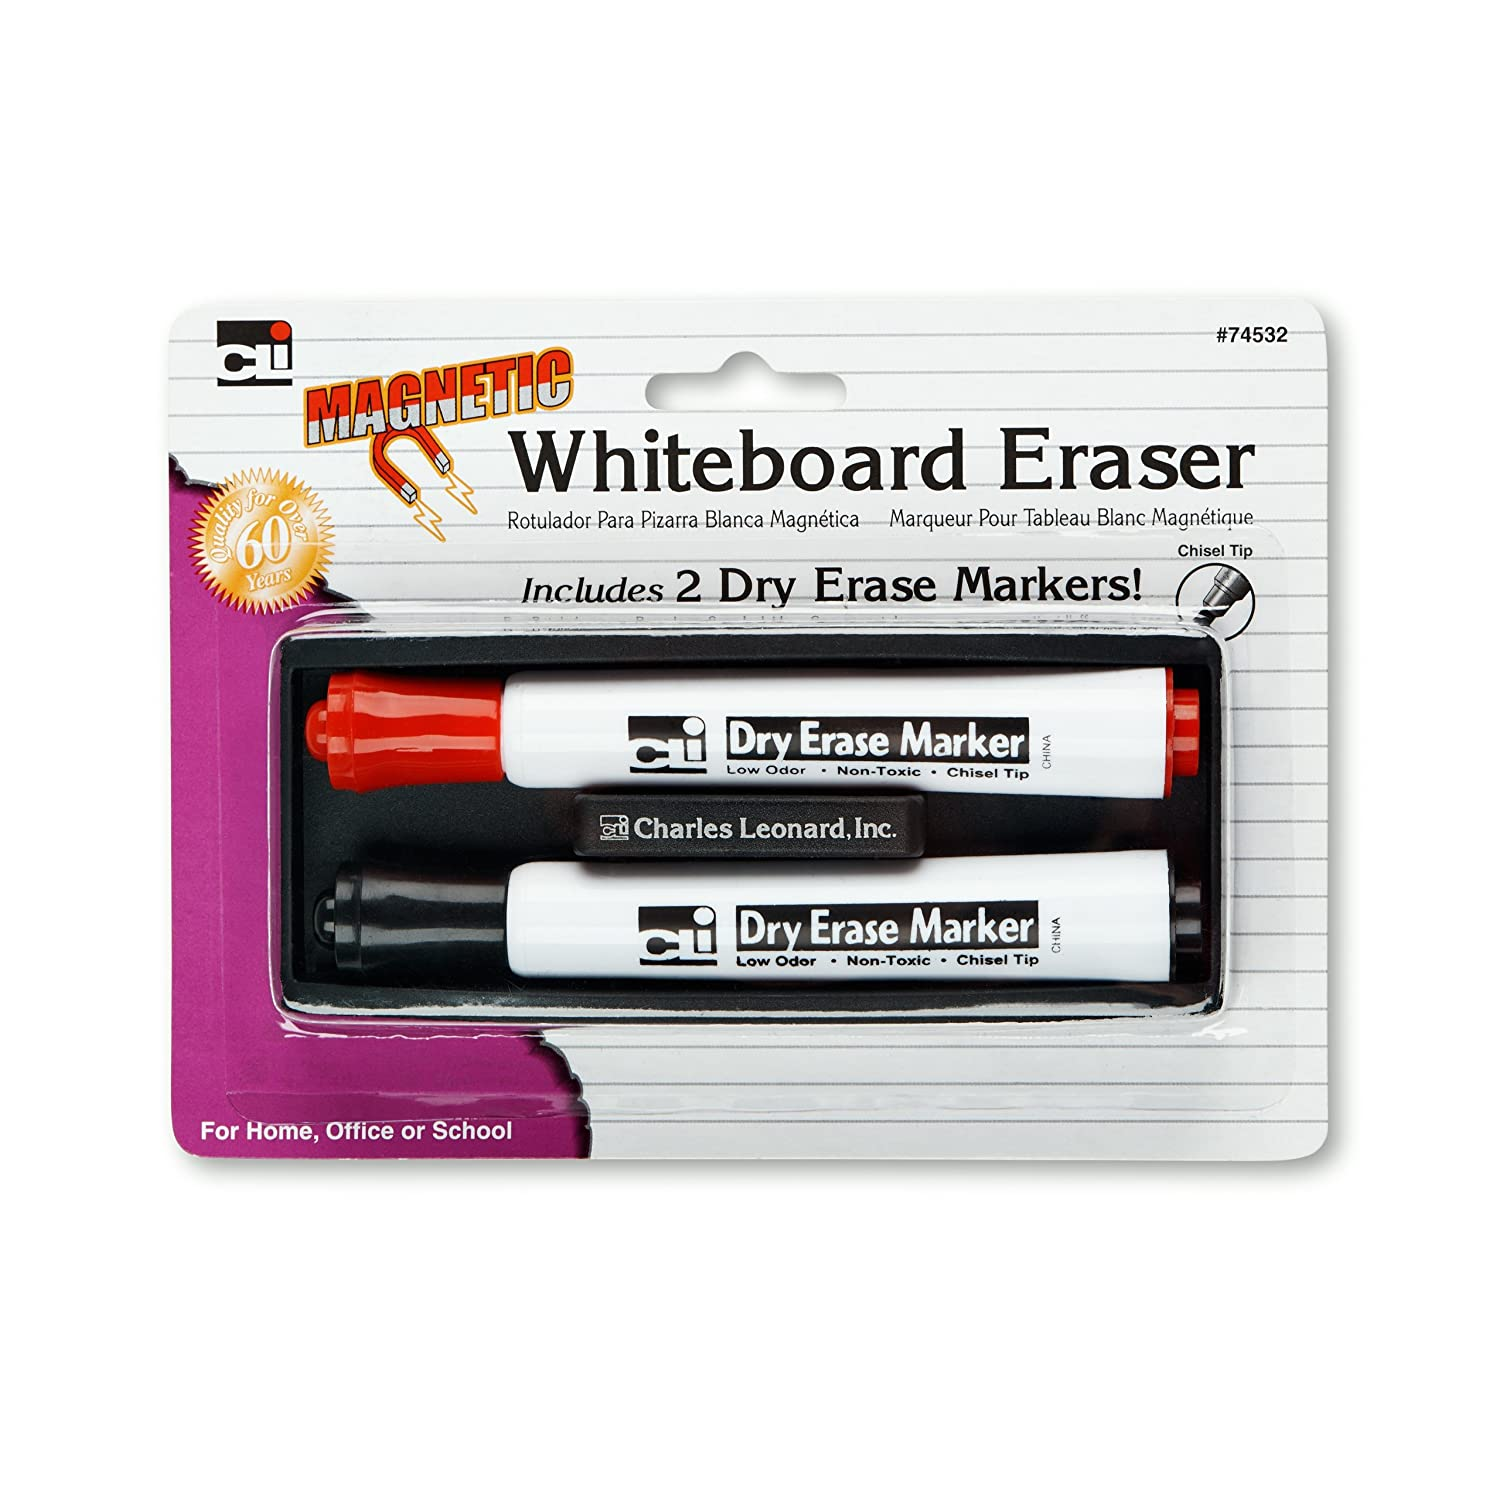 Charles Leonard Magnetic Whiteboard Eraser with 2 Dry Erase Markers, 1 Pack (74532)